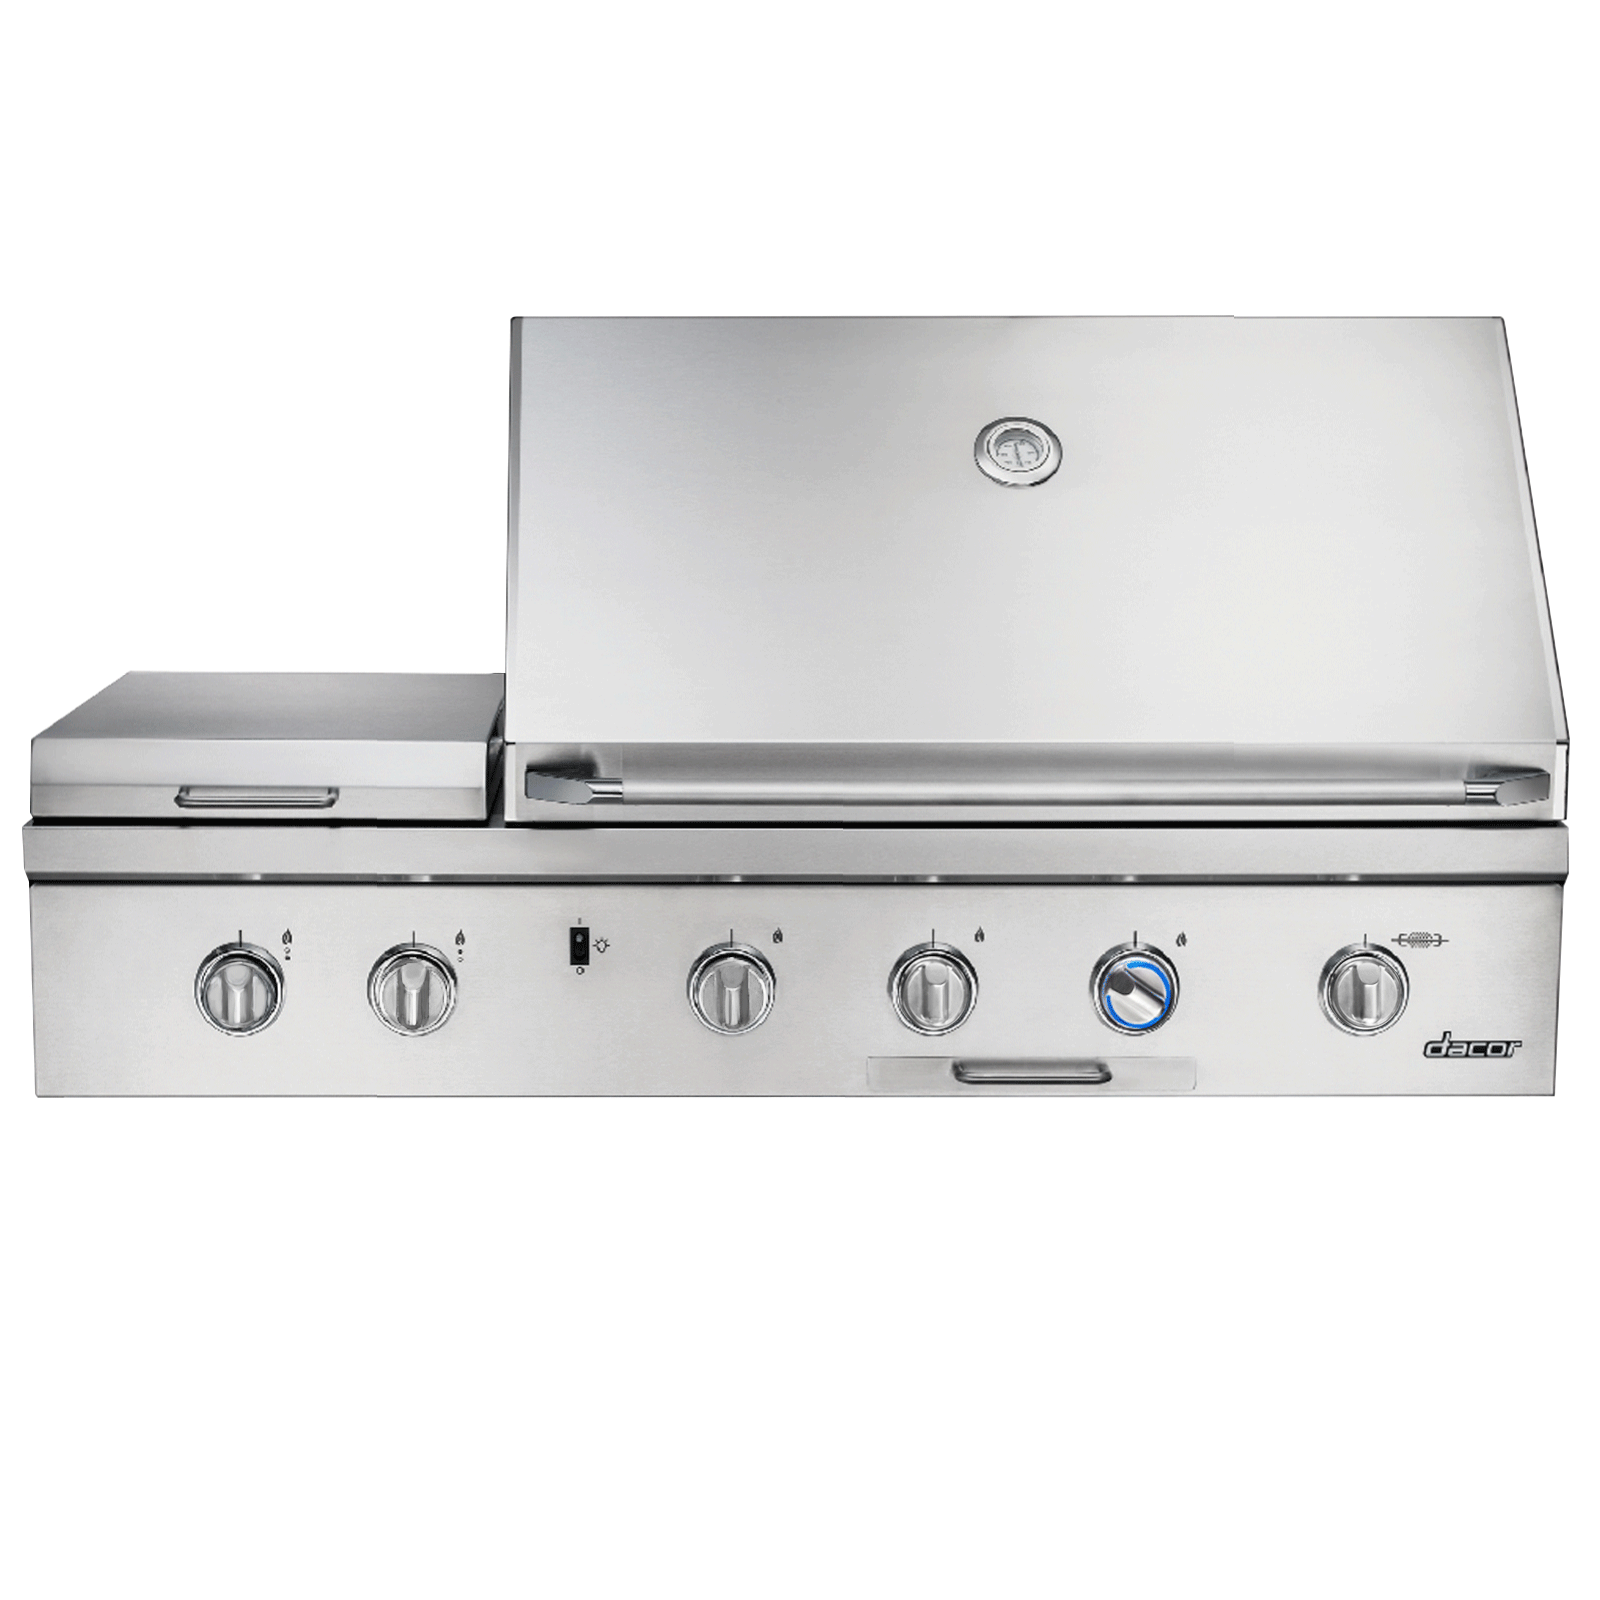 "Model: OBS52/NG | Dacor 52"" Outdoor Grill, , includes Sear Burner- Natural Gas"